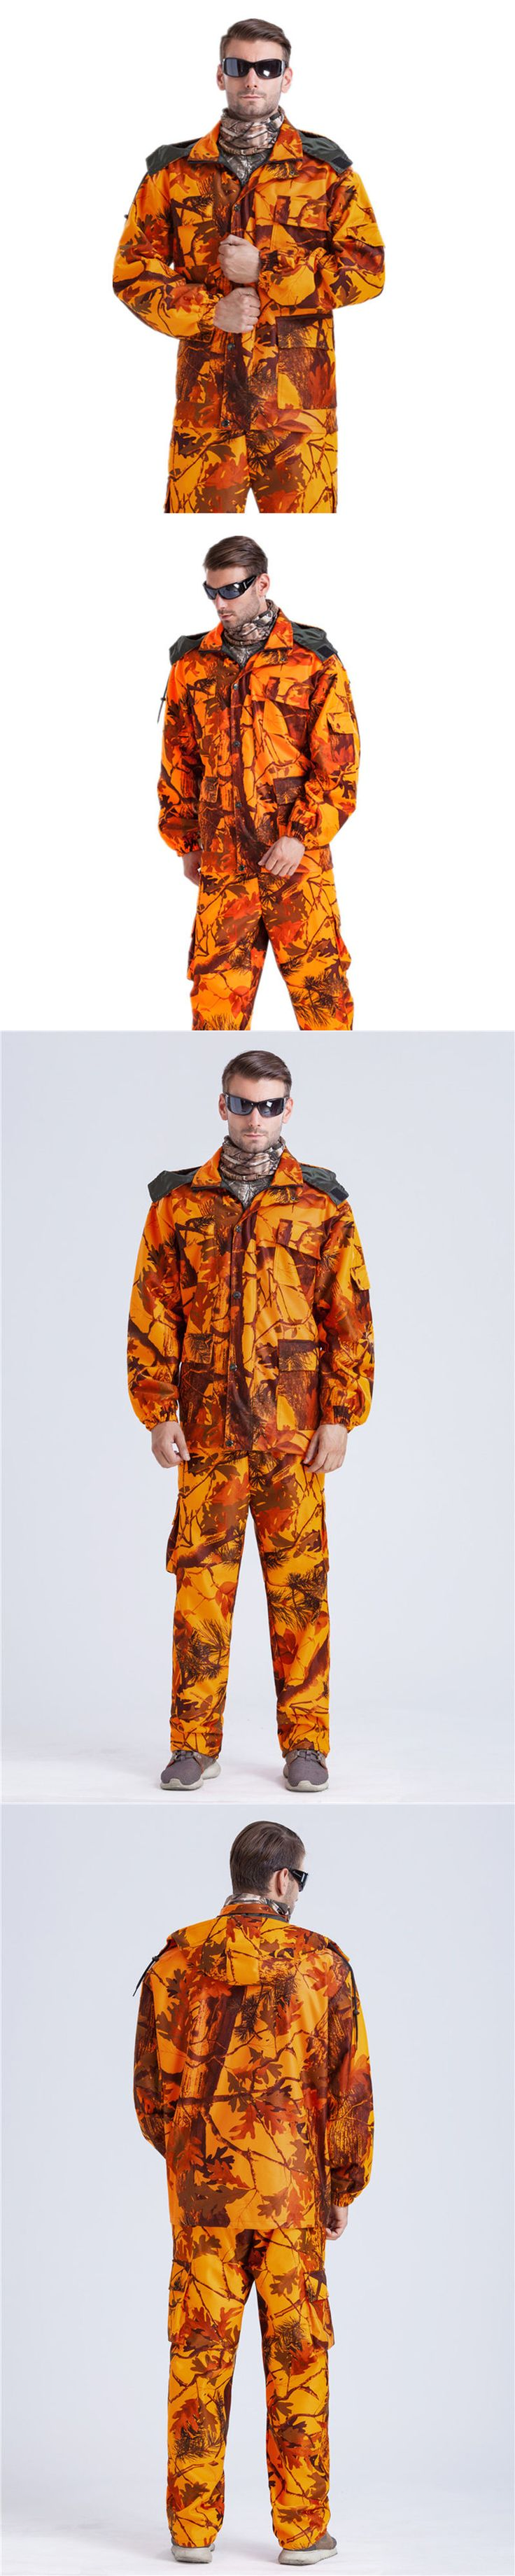 Jacket and Pants Sets 179981: Mens Hunting Clothes Jacket And Pants Set In Blaze Orange Camo Waterproof Hooded -> BUY IT NOW ONLY: $75 on eBay!